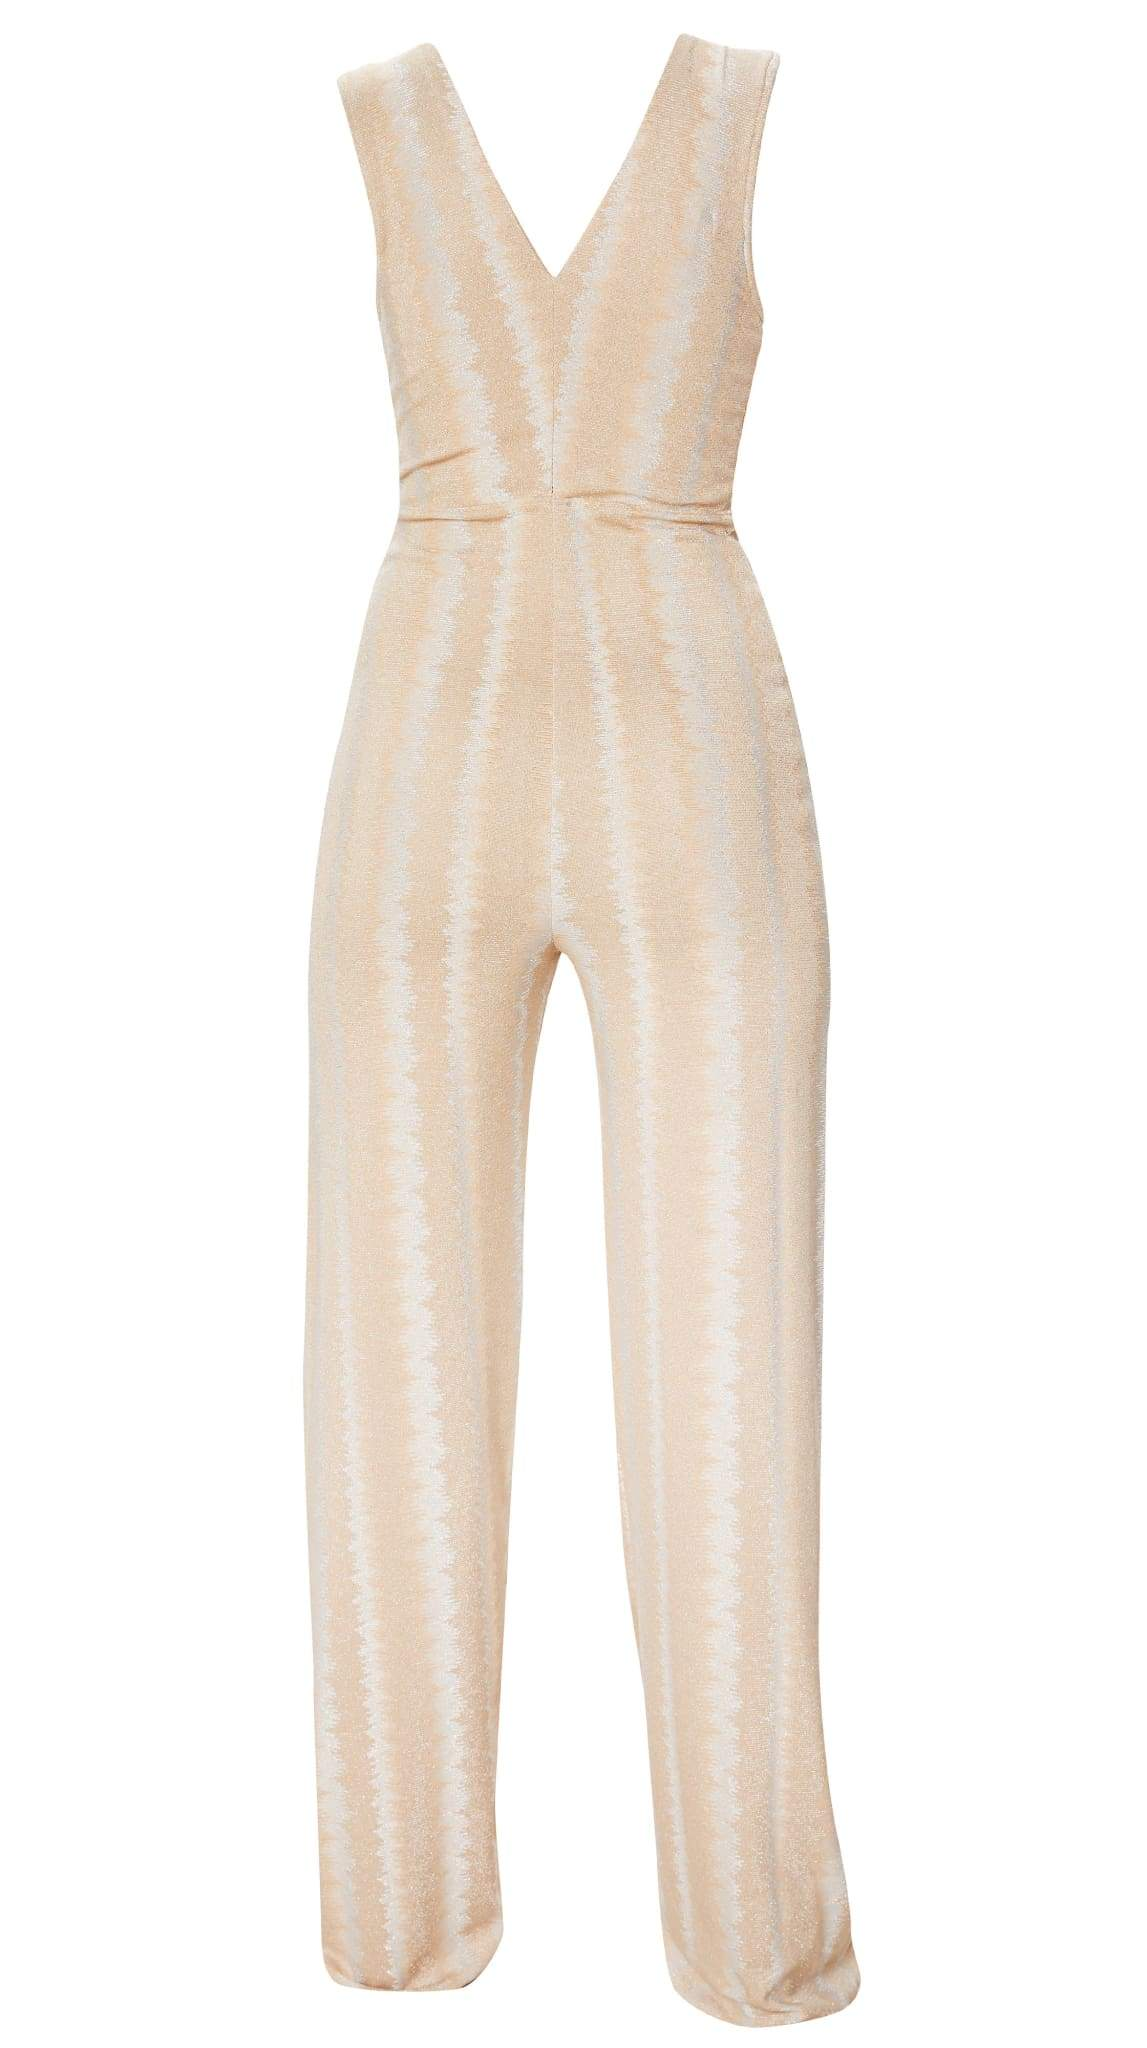 Nude Metallic Jumpsuit by Meghan Hughes | Nineteenth Amendment